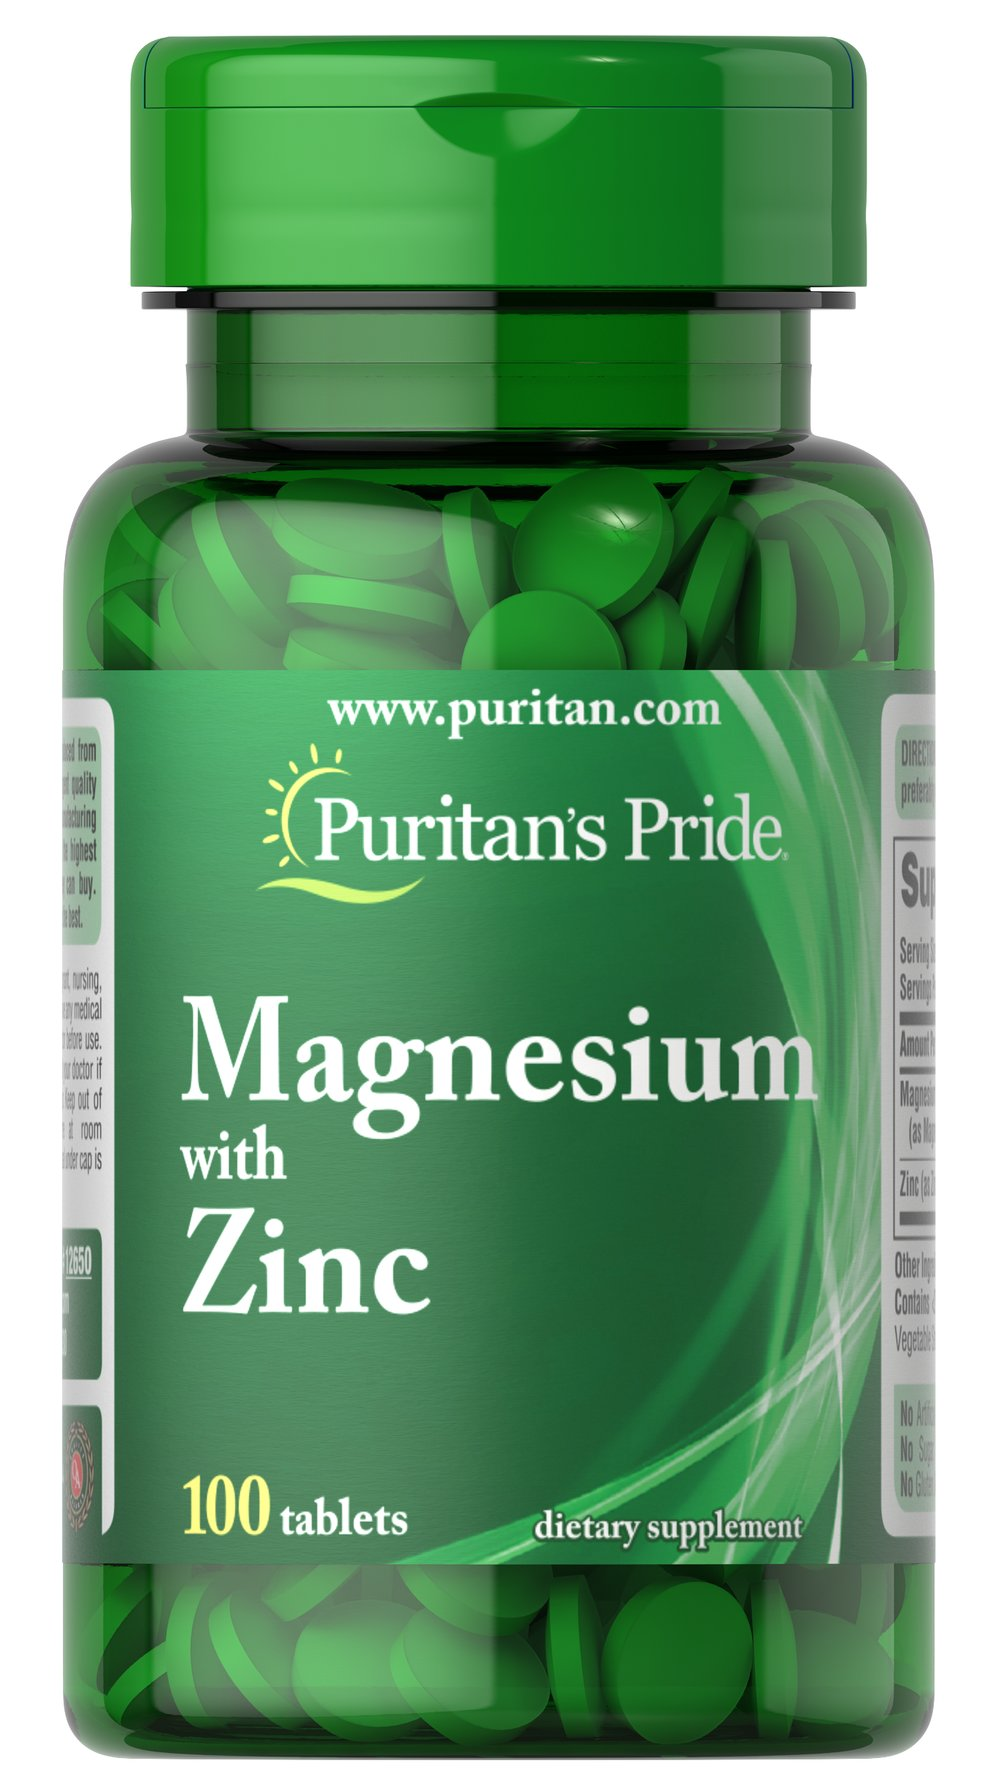 Magnesium with Zinc <p>Minerals are important constituents of any healthy diet.  This supplement is a good source of the Magnesium and Zinc you need everyday for health.** Magnesium helps with bone health, muscle contraction and nervous system promotion.** Zinc is great for immune system health and cell growth.** Together, they make up a quality supplement that ensures a sufficient daily intake of these important nutrients.**</p> 100 Tablets 266 mg/10 mg $6.99